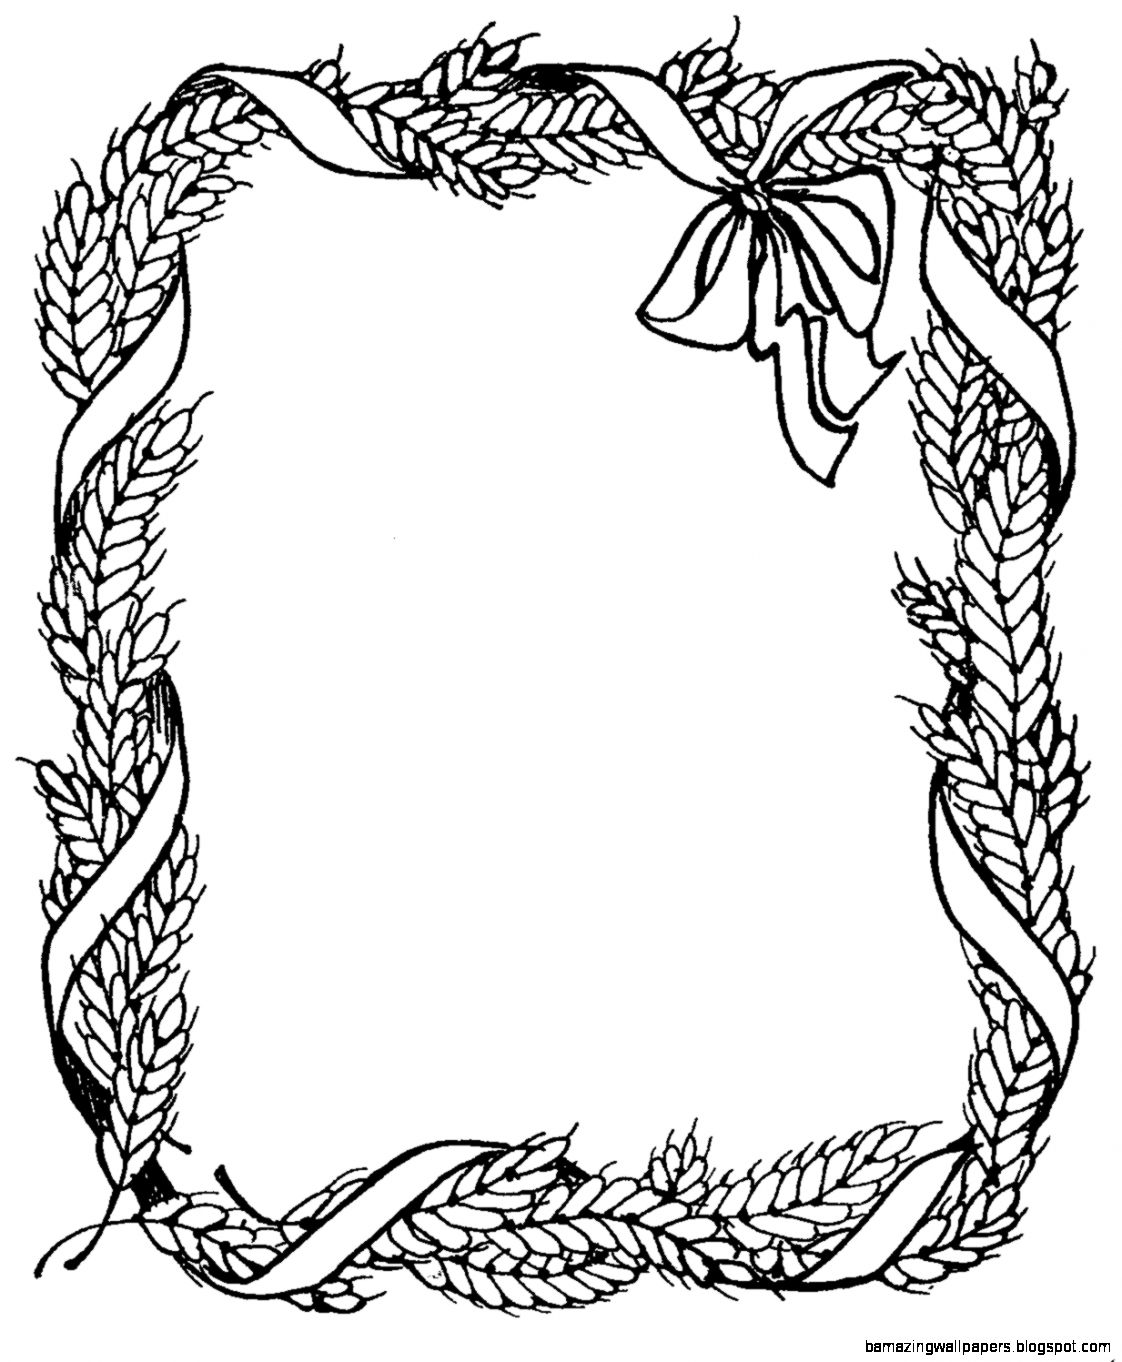 Thanksgiving Border Clipart Black And White